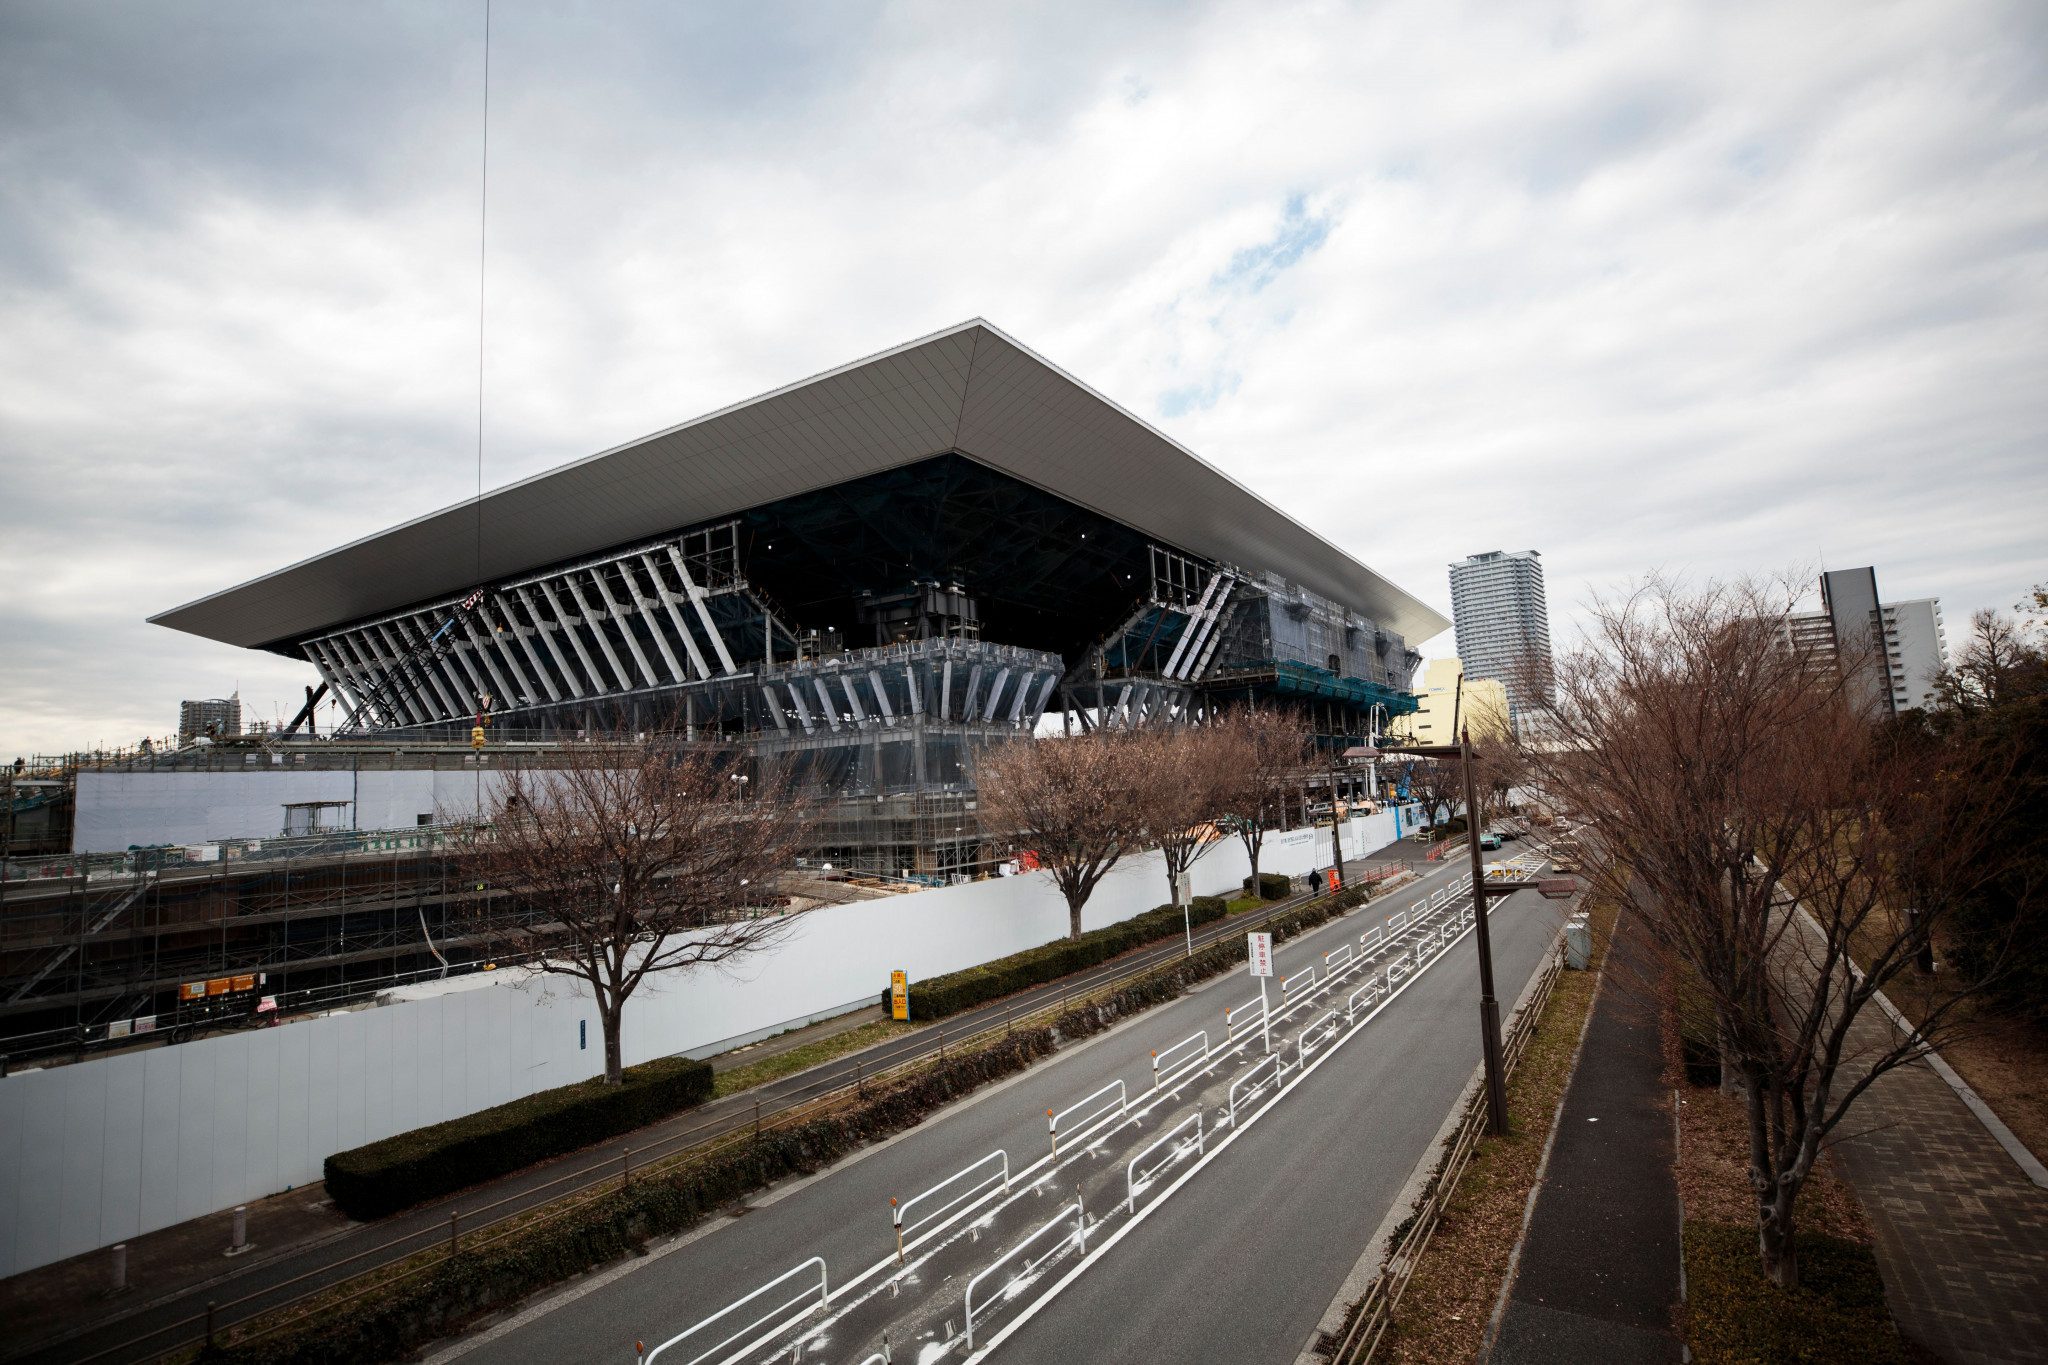 The capacity of the Aquatics Centre is 15,000 ©Getty Images